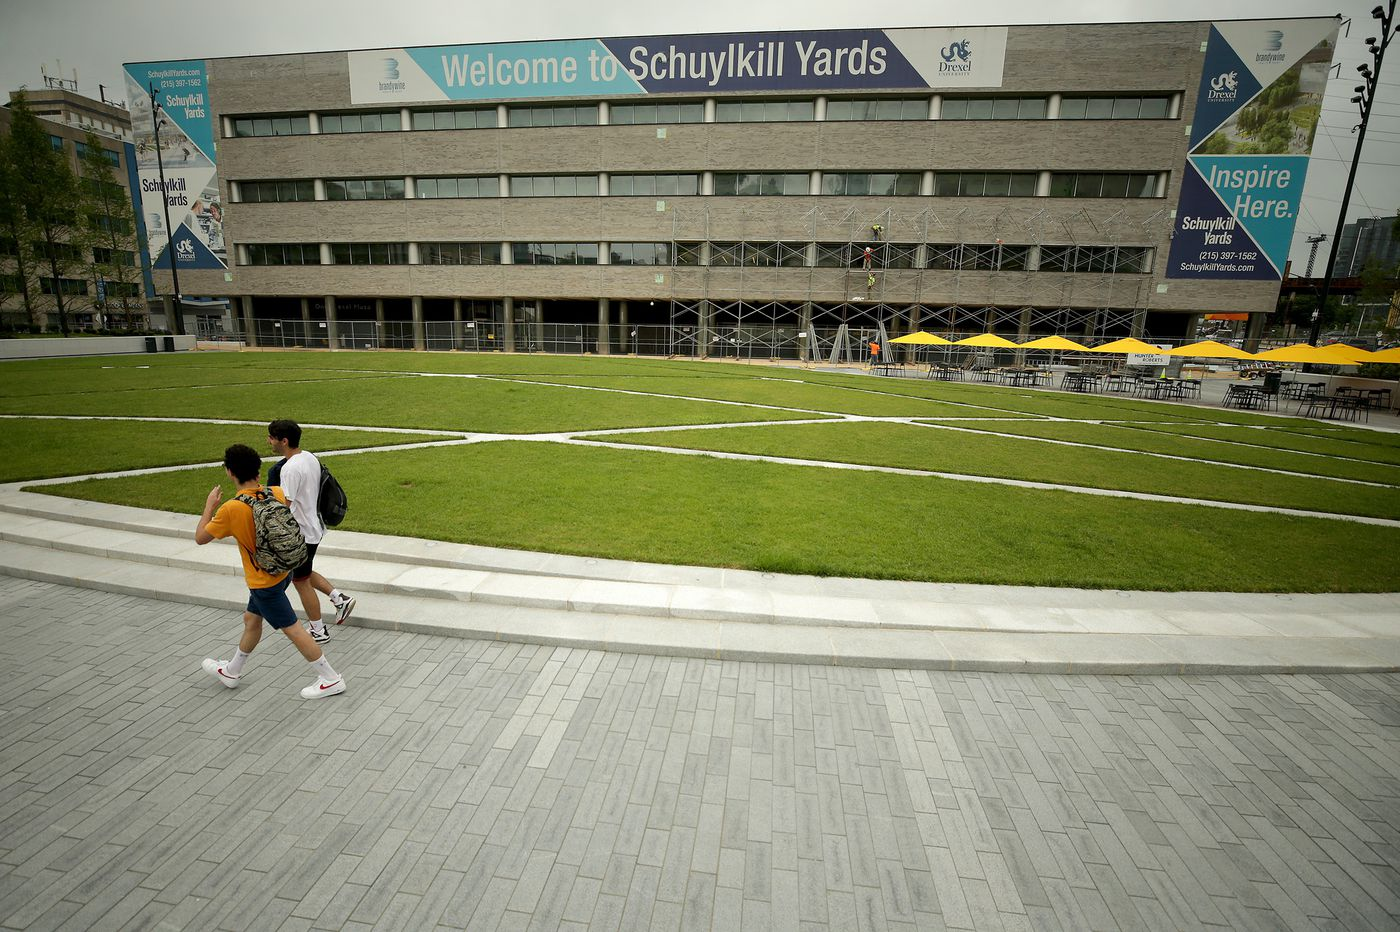 Schuylkill Yards first project: Turning a parking lot into a park